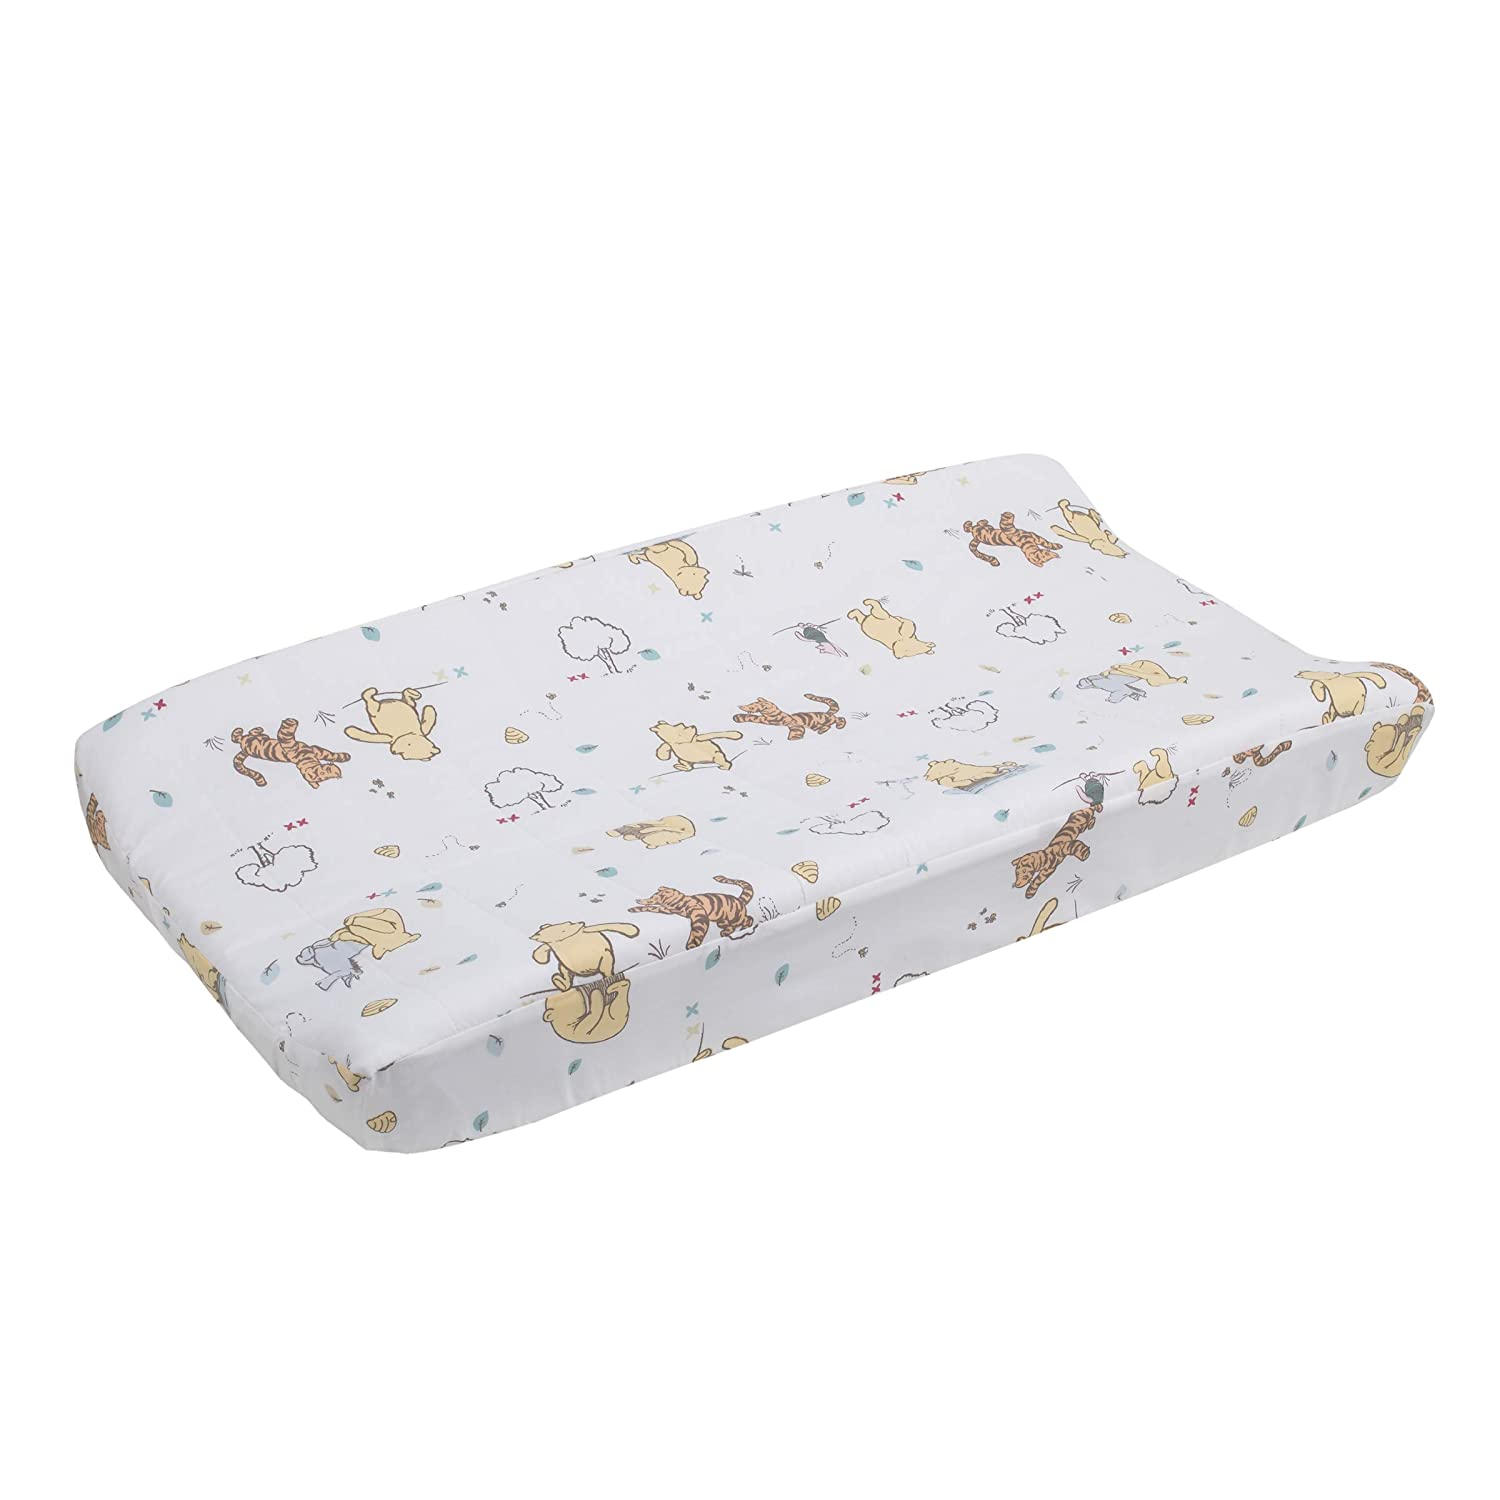 Disney Winnie The Pooh Classic Pooh 100% Cotton Quilted Changing Pad Cover, Ivory/Butter/Aqua/Orange